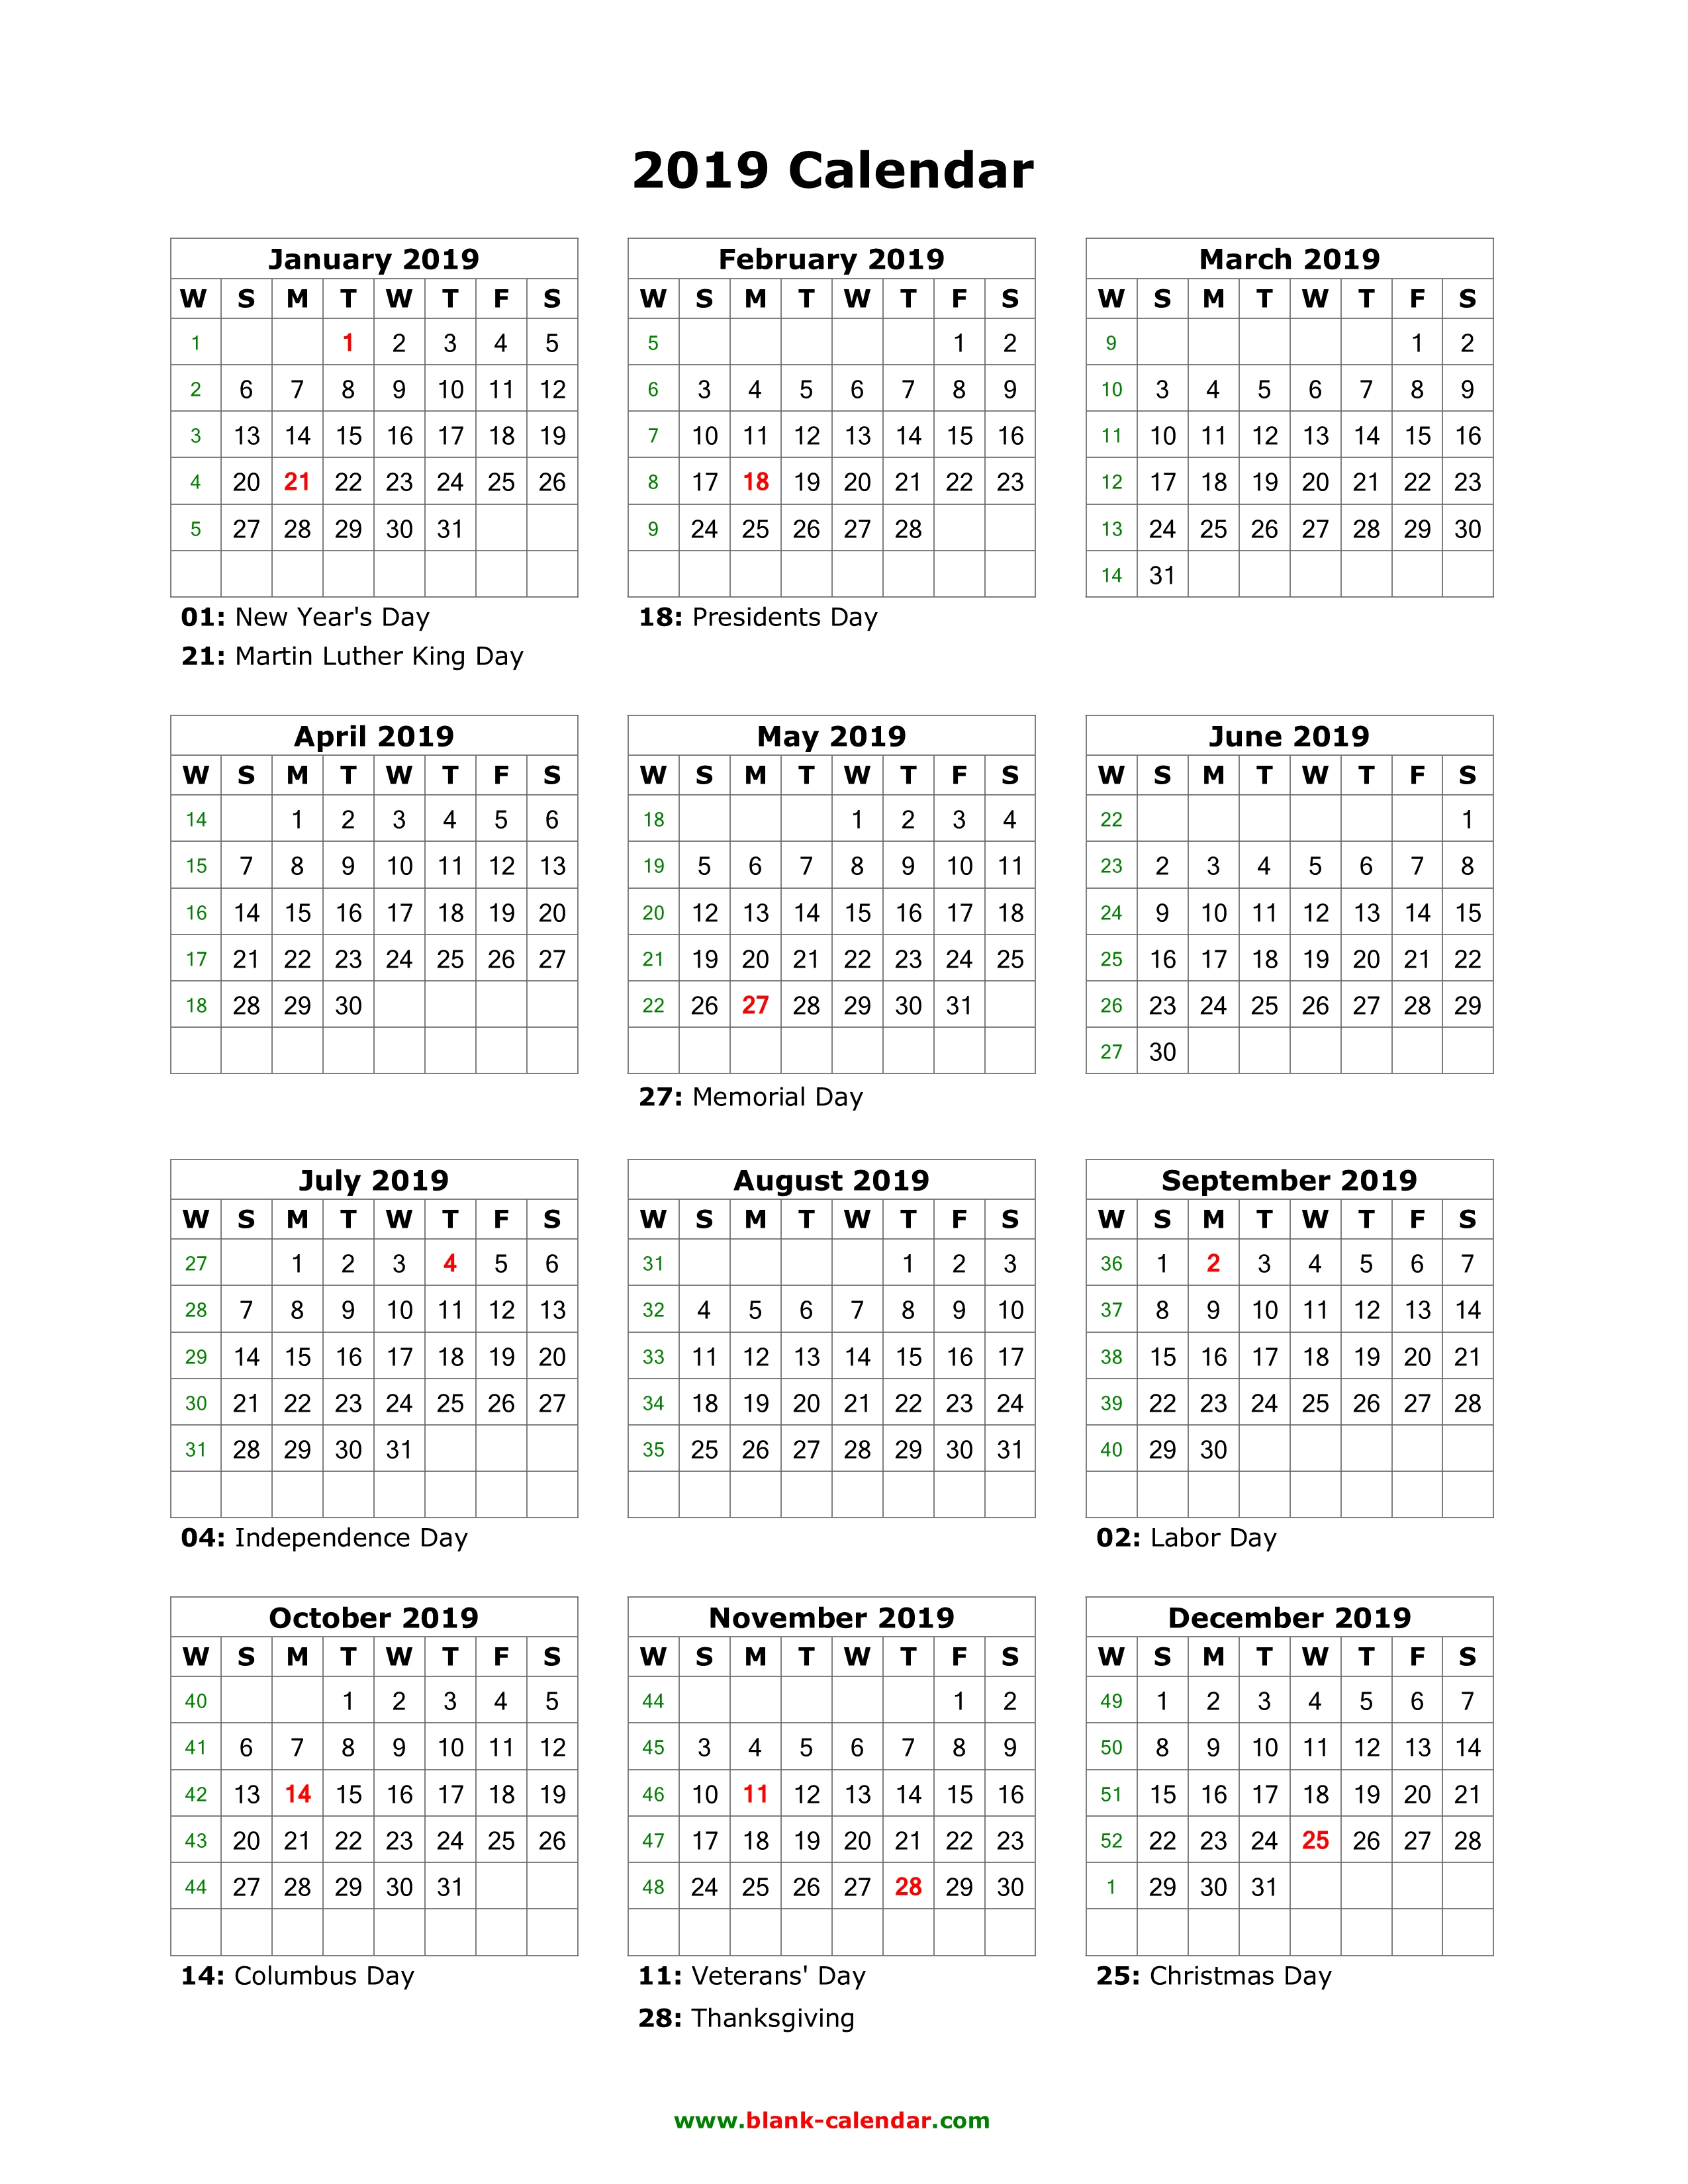 Download Blank Calendar 2019 With Us Holidays (12 Months On One Page pertaining to Blank 12 Month Calender